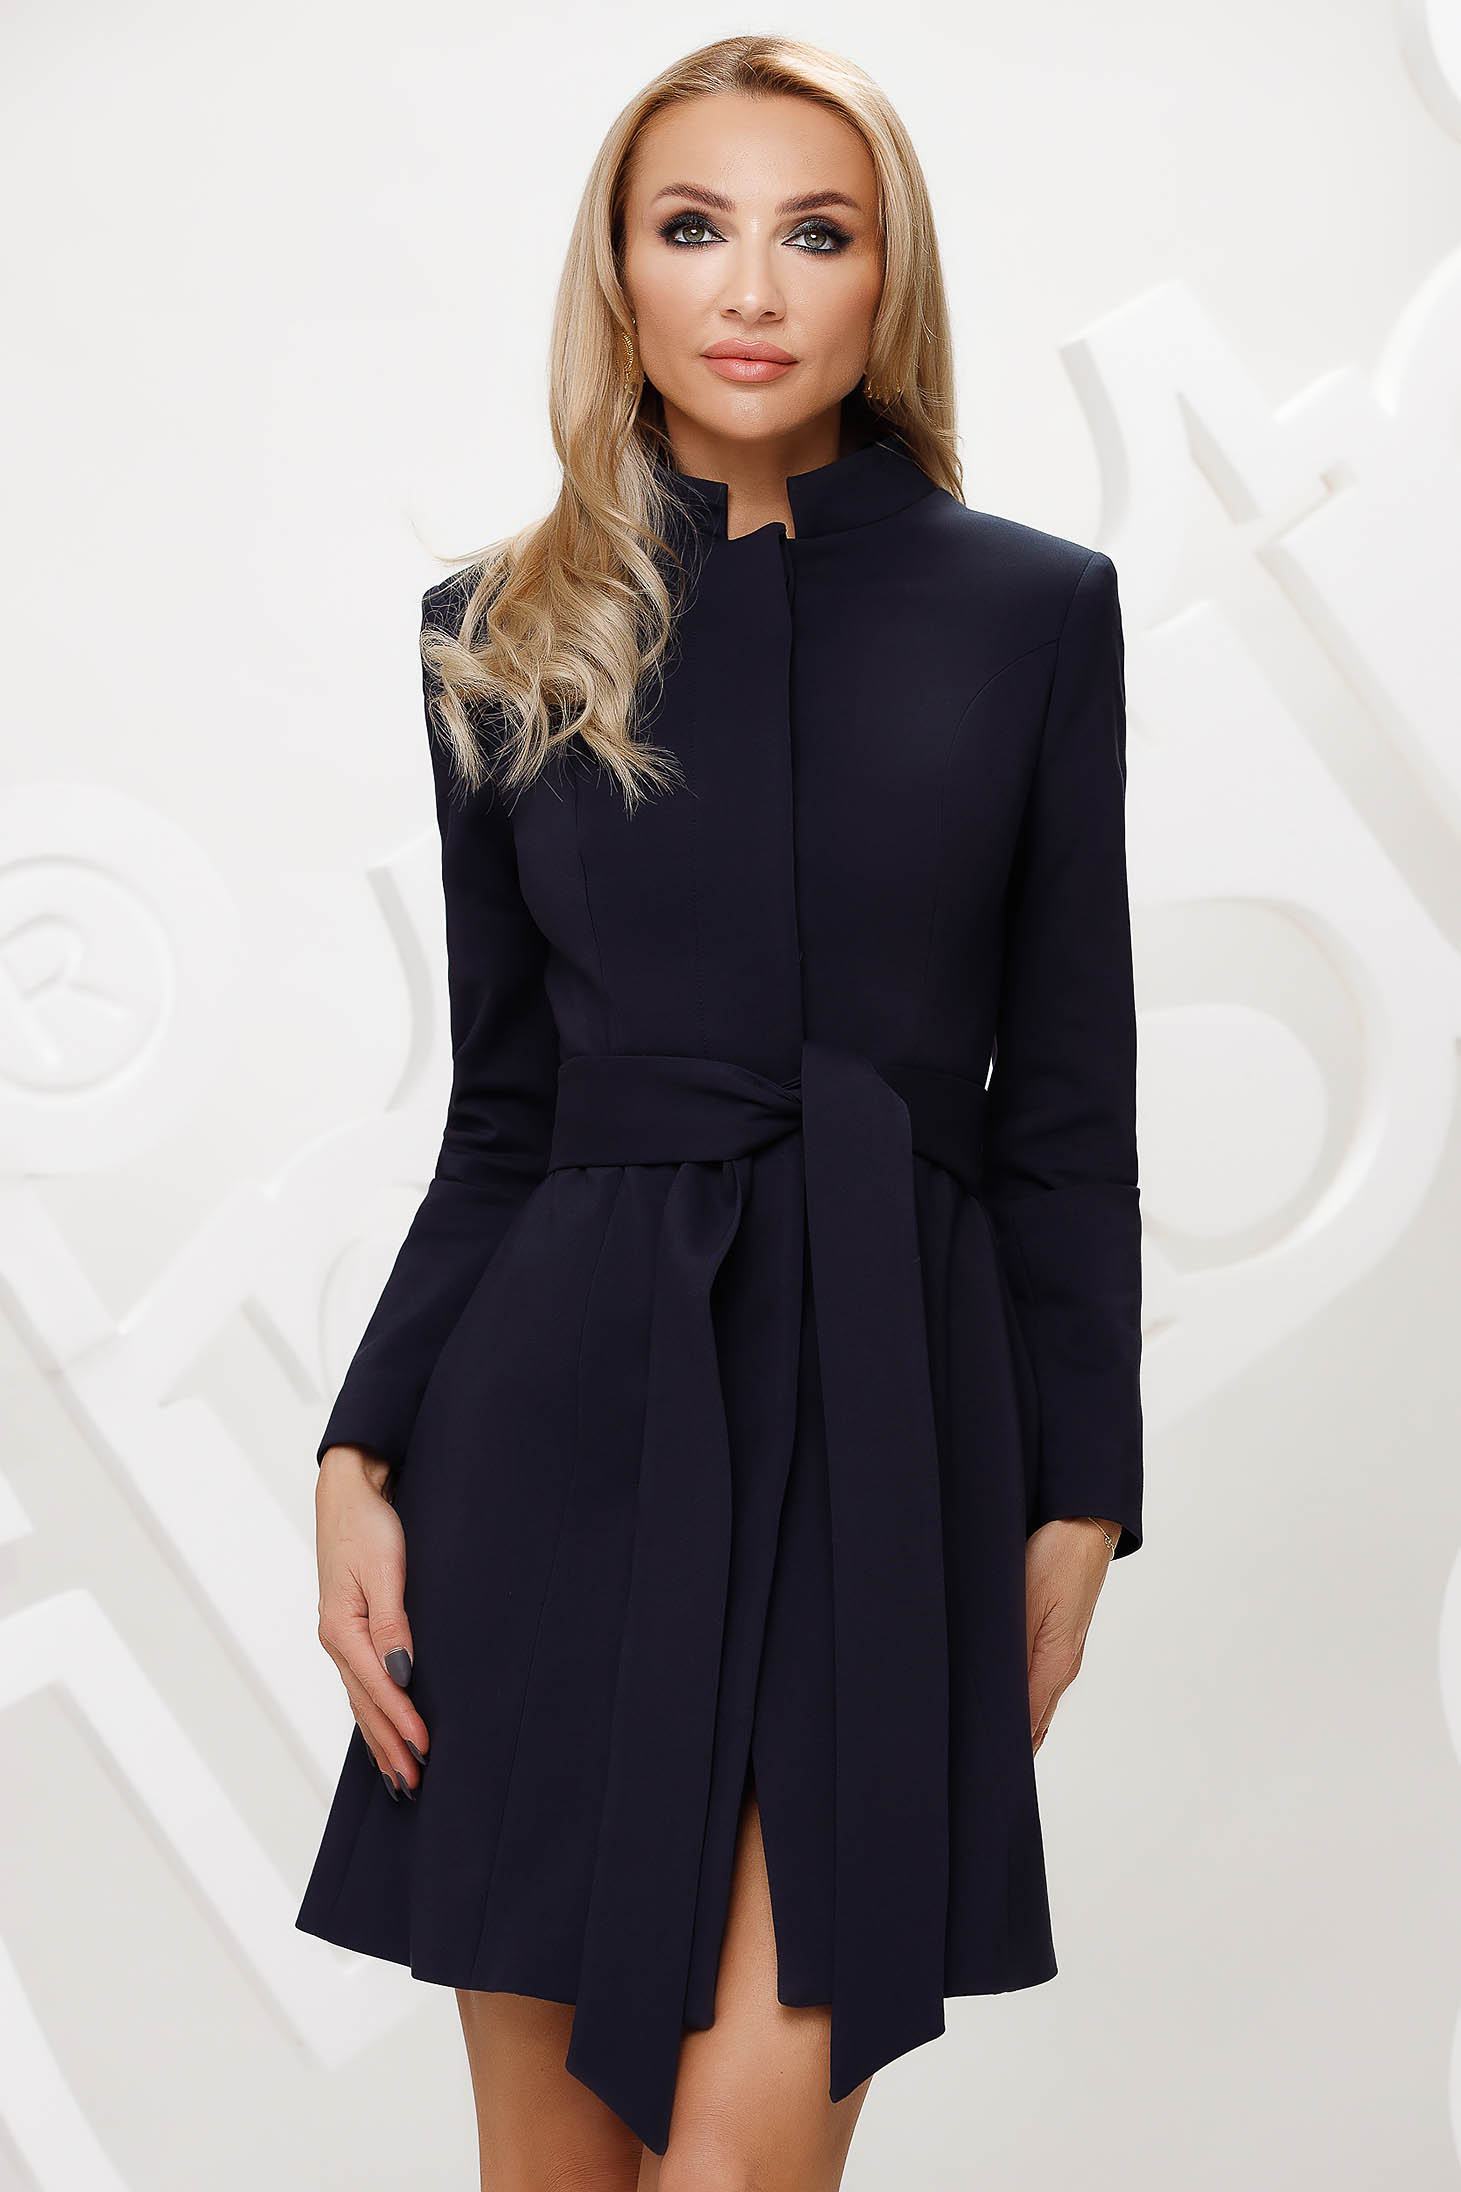 Cloche with inside lining accessorized with tied waistband elegant with bow darkblue overcoat